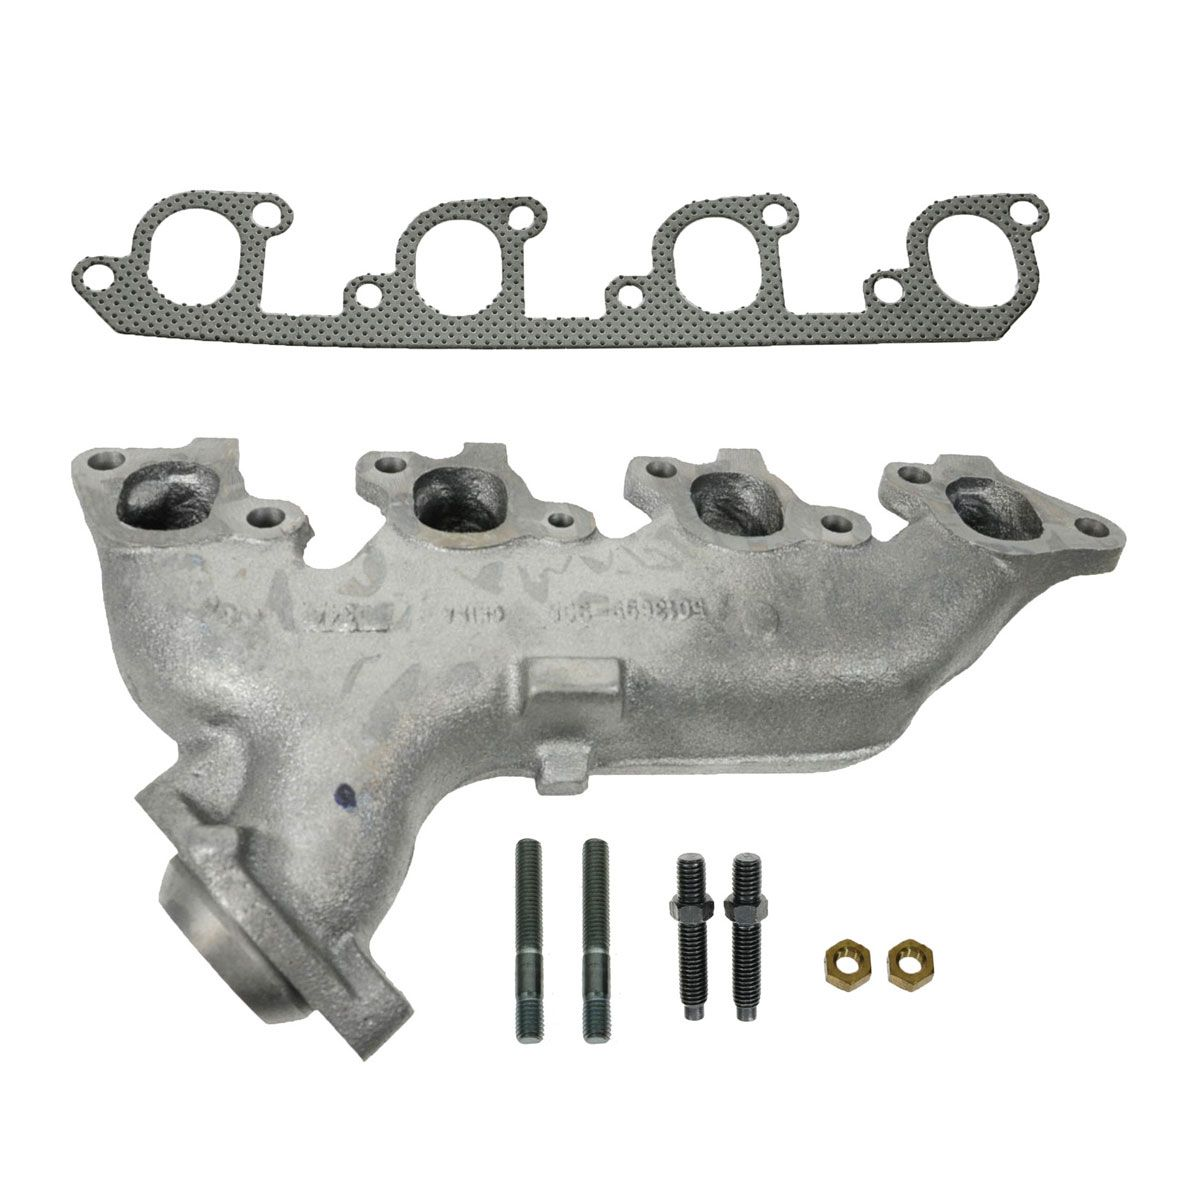 Front Exhaust Manifold NEW for Ford Econoline Van F Series Pickup Truck 4.9L